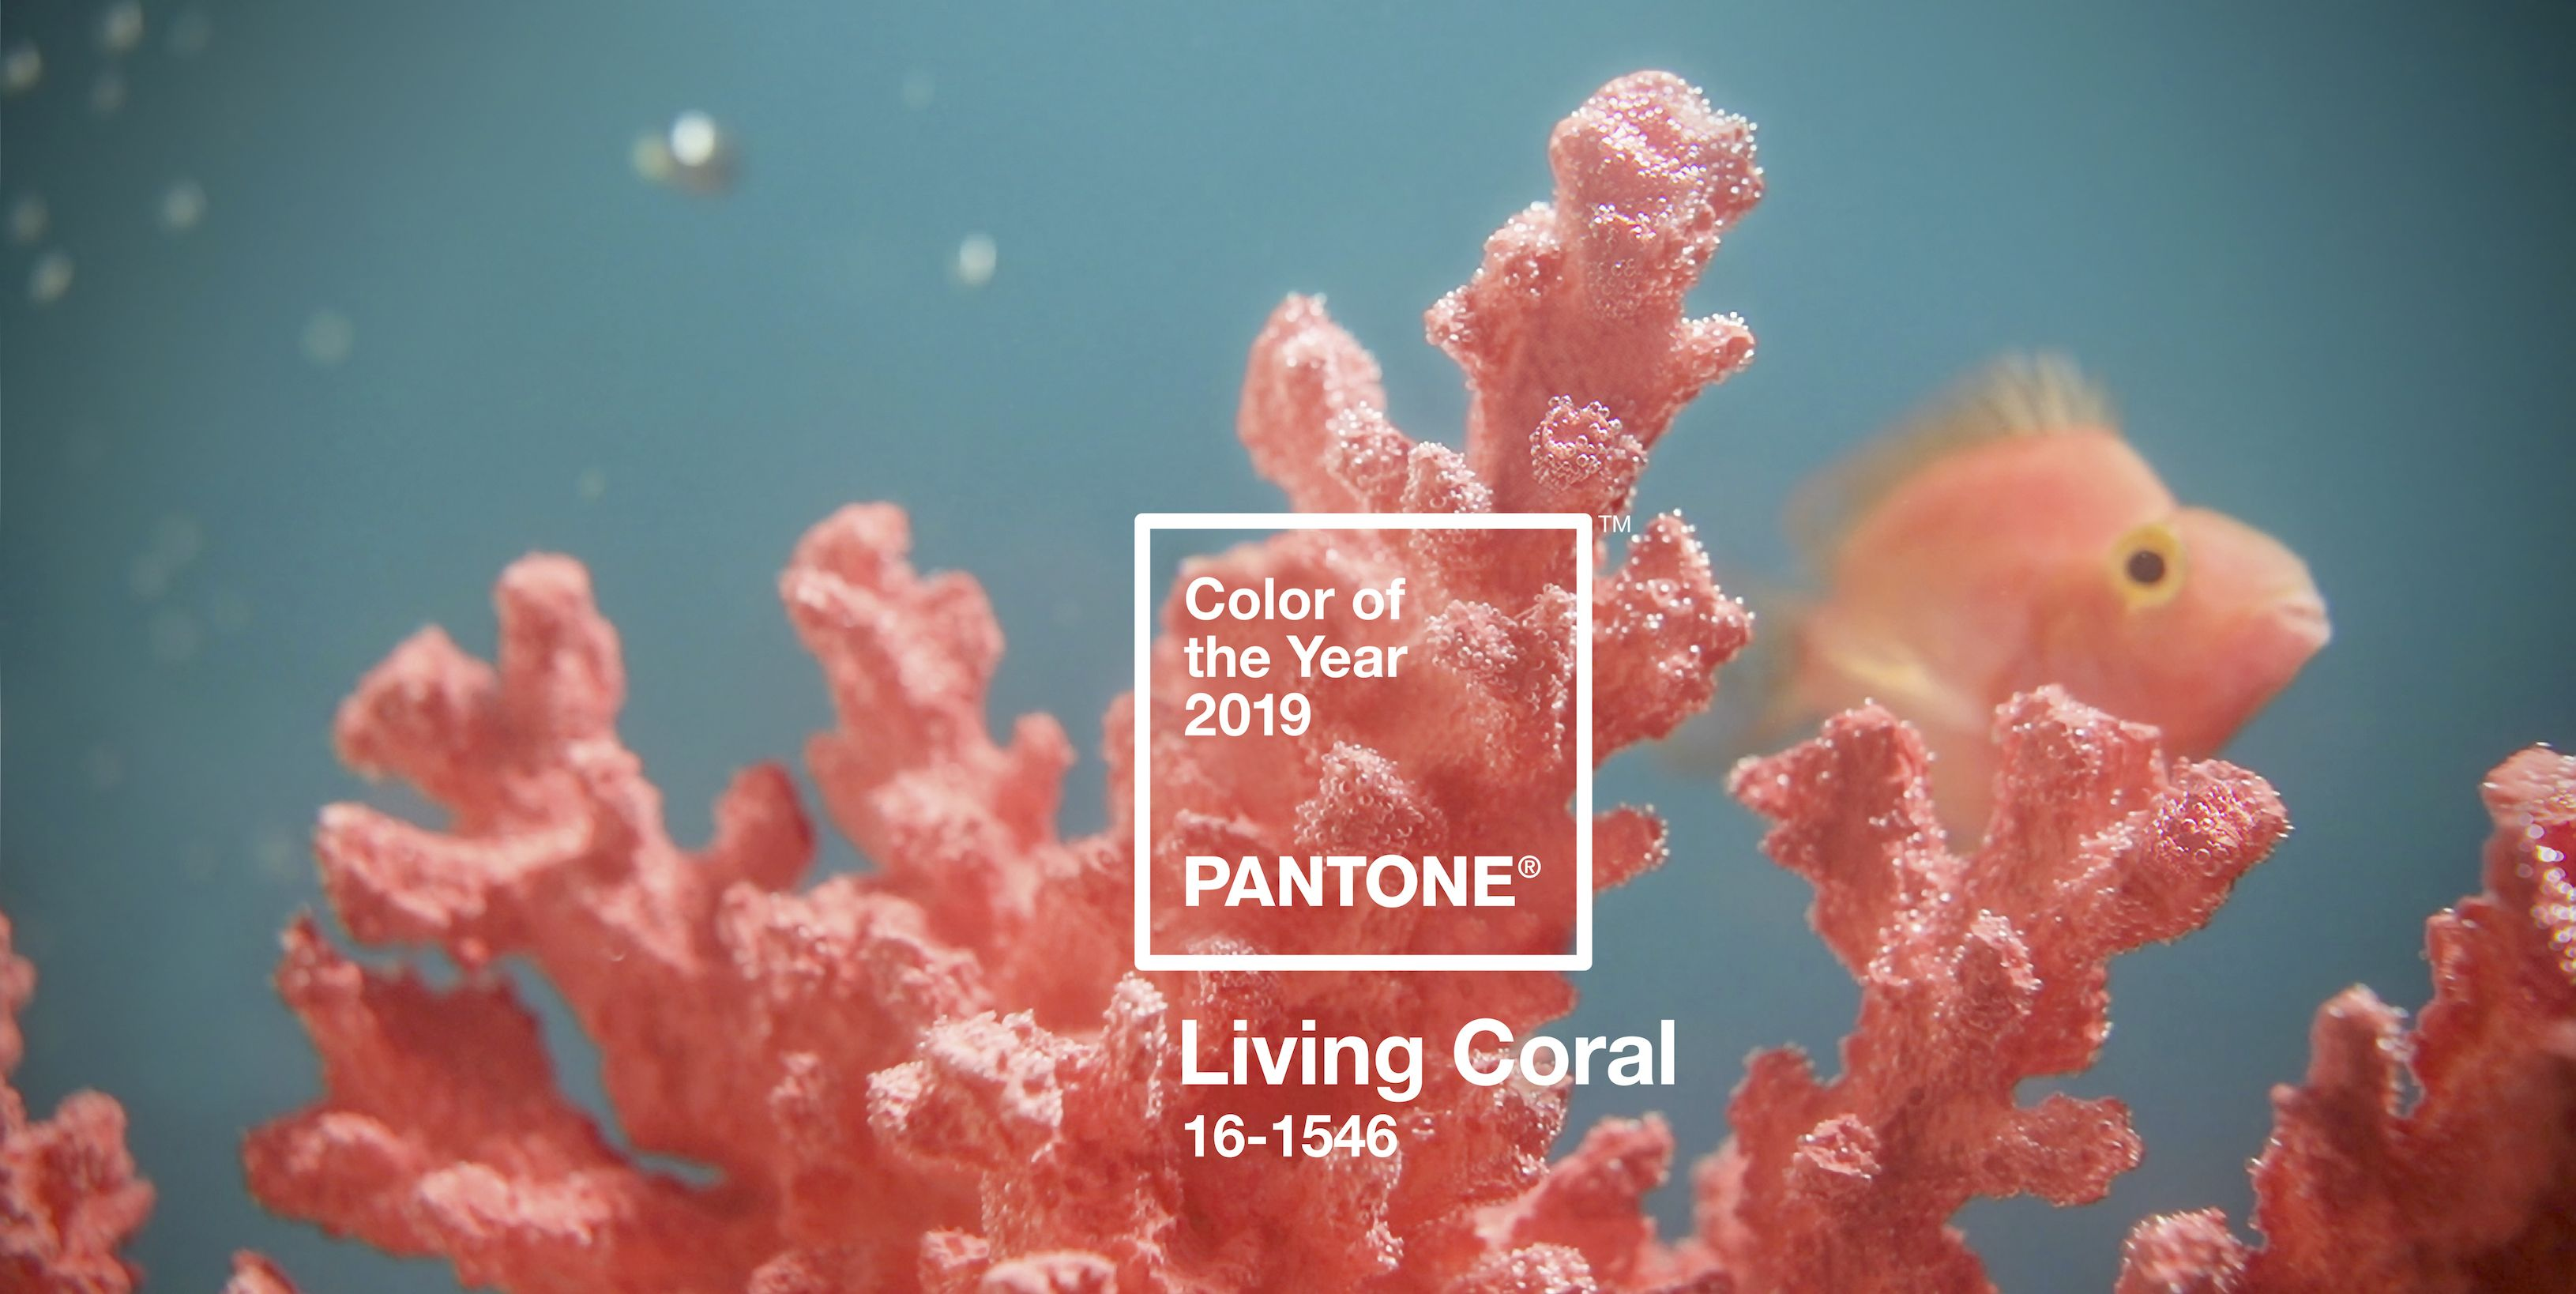 Pantone Just Released Their Color of the Year for 2019